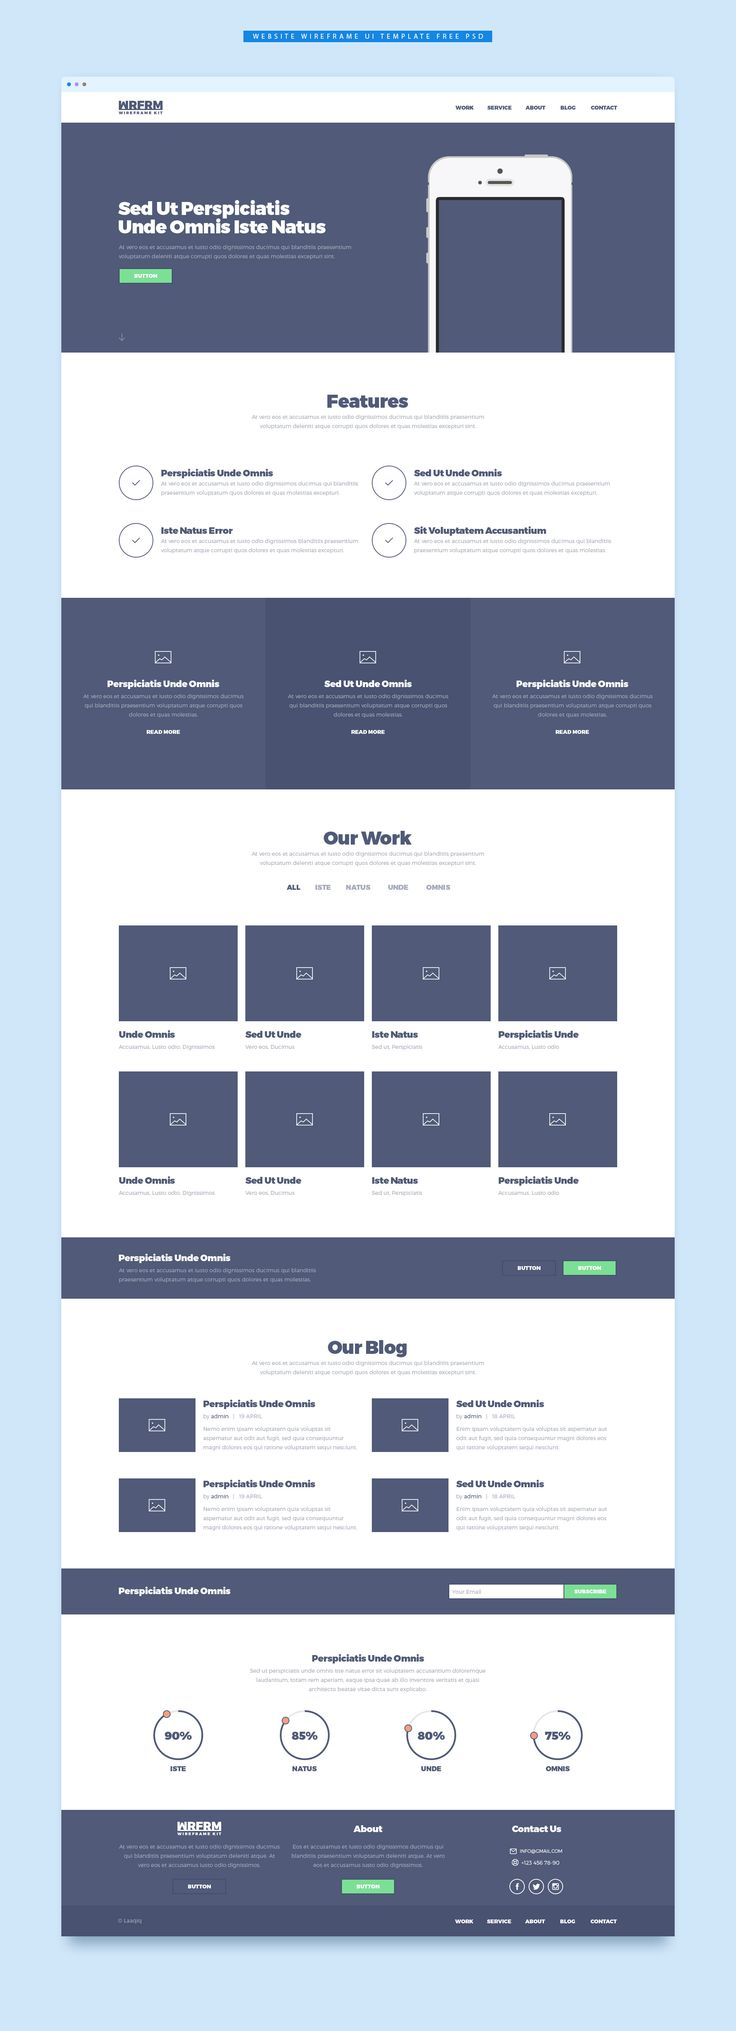 Cool Website Wireframe UI Template Free PSD. Download Website Wireframe UI Template Free PSD. A wireframe UI kit which will help you create high quality website wireframe and will help you speed your work giving you more time to work on the final website design. The pack contains lots of components, each pixel perfect, with organised folder and layers making it easier to do changes. Website Wireframe UI Template Free PSD can help you create a full one page website. Hope you like it. Enjoy!